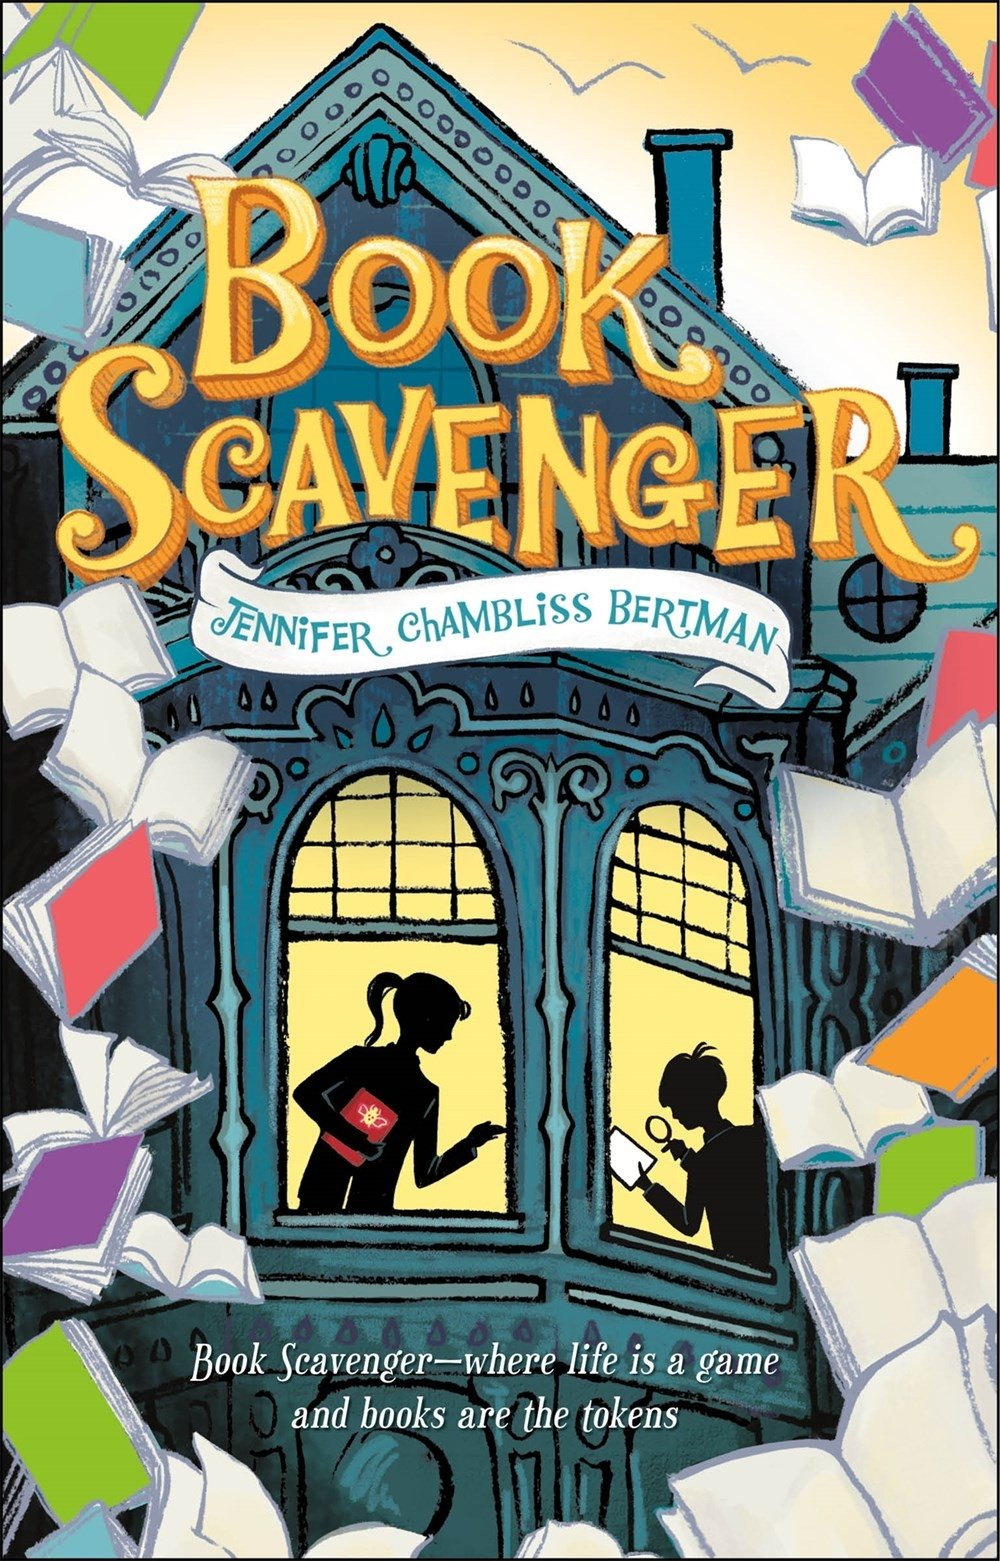 Book scavenger the book scavenger series jennifer chambliss book scavenger the book scavenger series jennifer chambliss bertman 9781250079800 amazon books fandeluxe Gallery